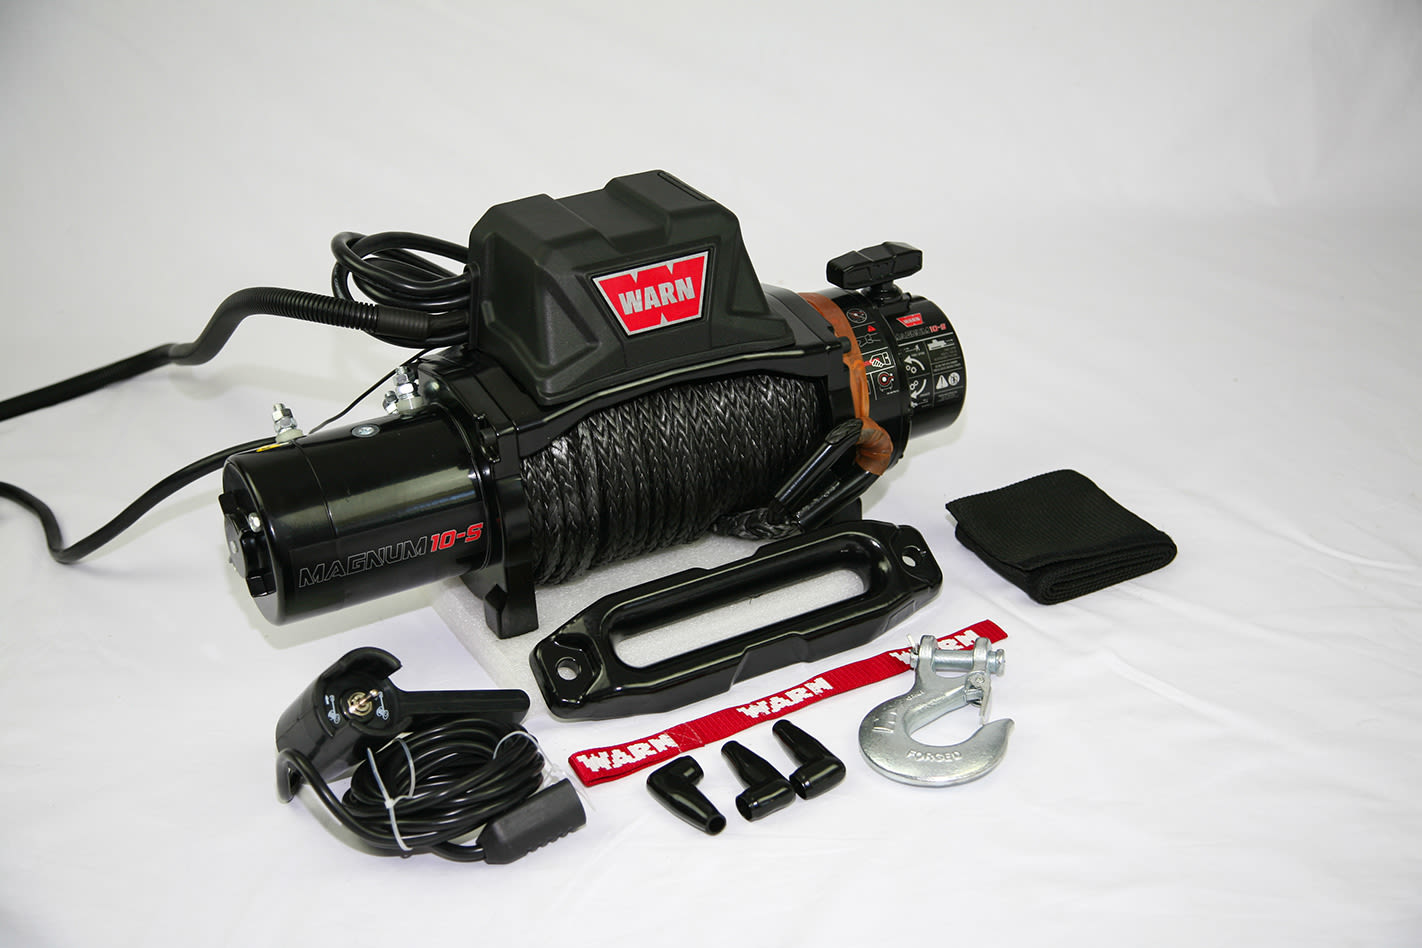 Warn Magnum 10K-S winch recovery kit